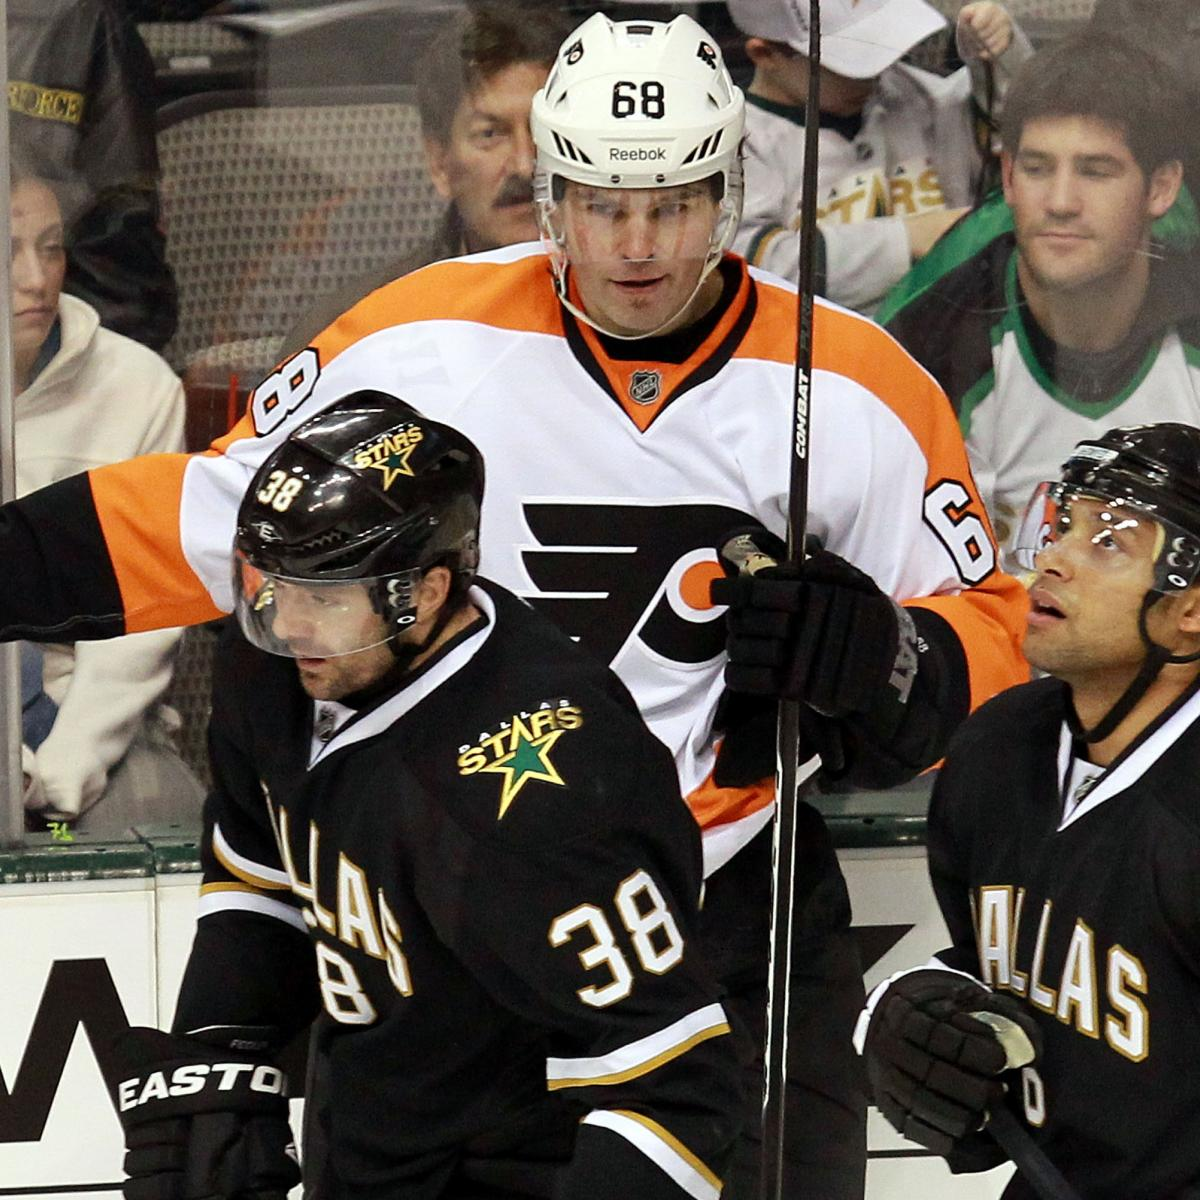 Latest update on Jaromir Jagr is not good at all. - NHL ...